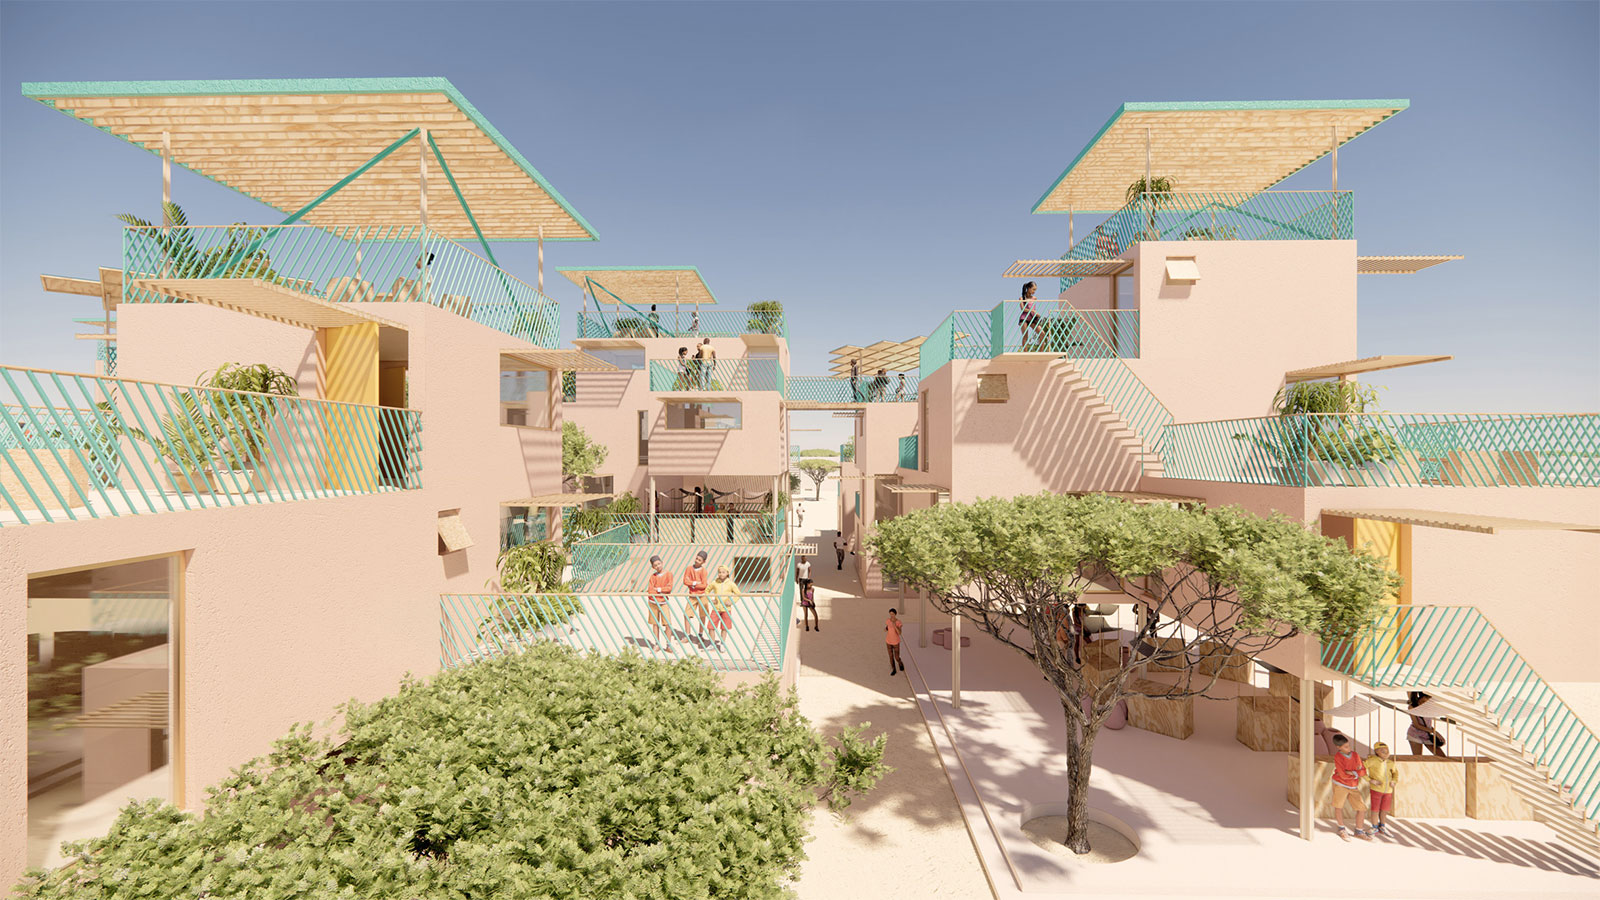 Othalo housing modules will be built using recycled waste plastic